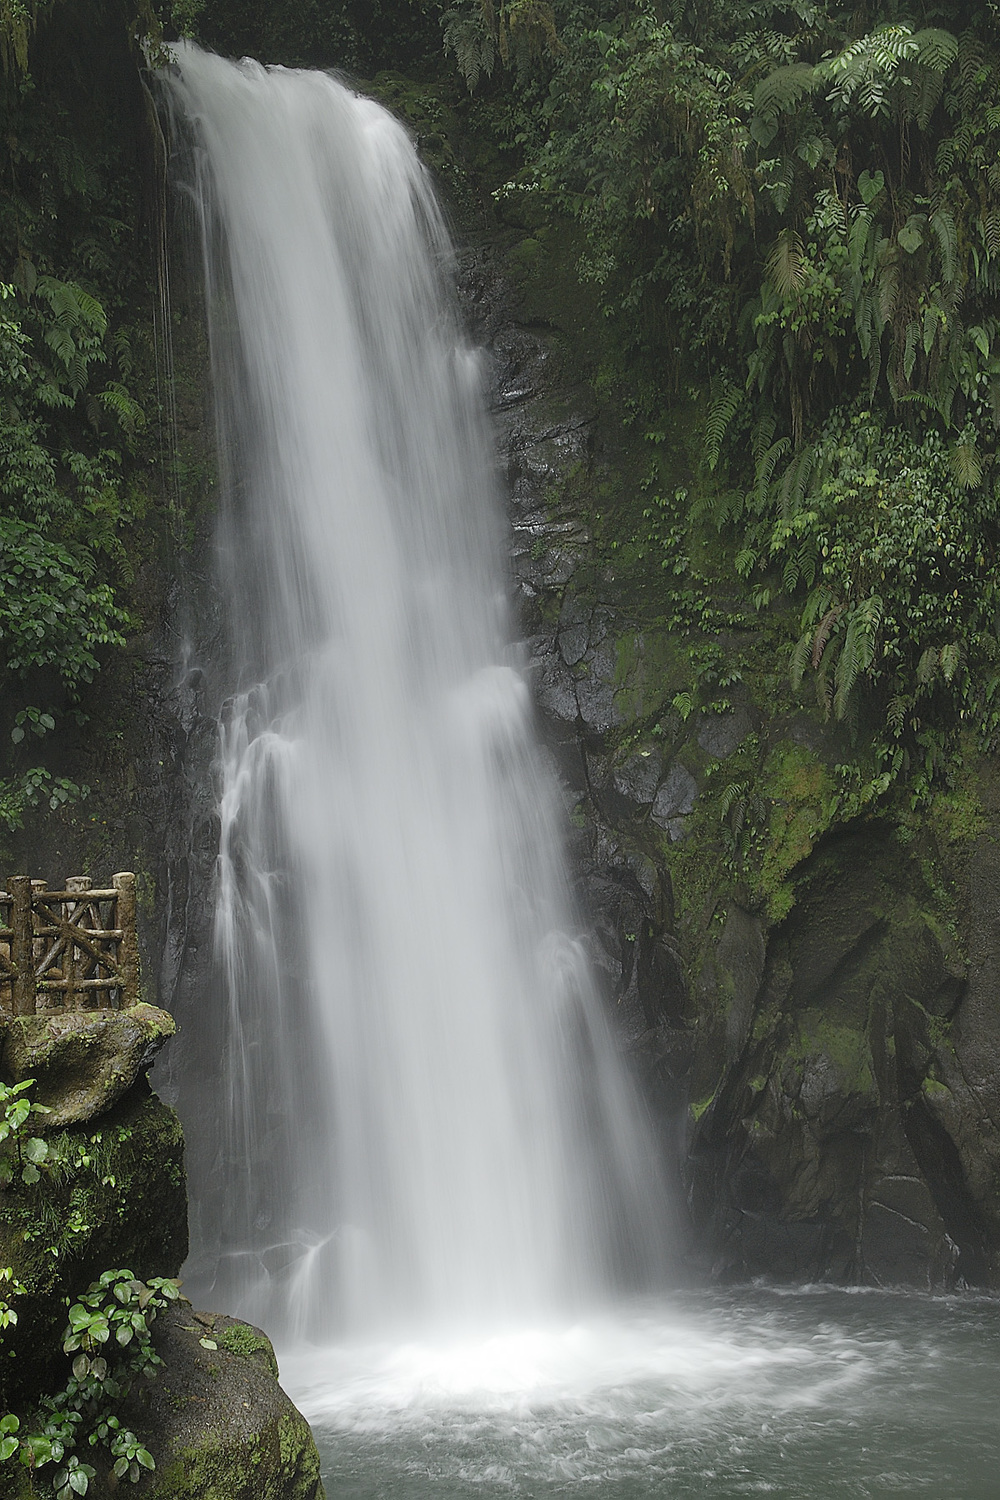 An easy hike led to the waterfalls, which were particularly spectacular during the rainy season!